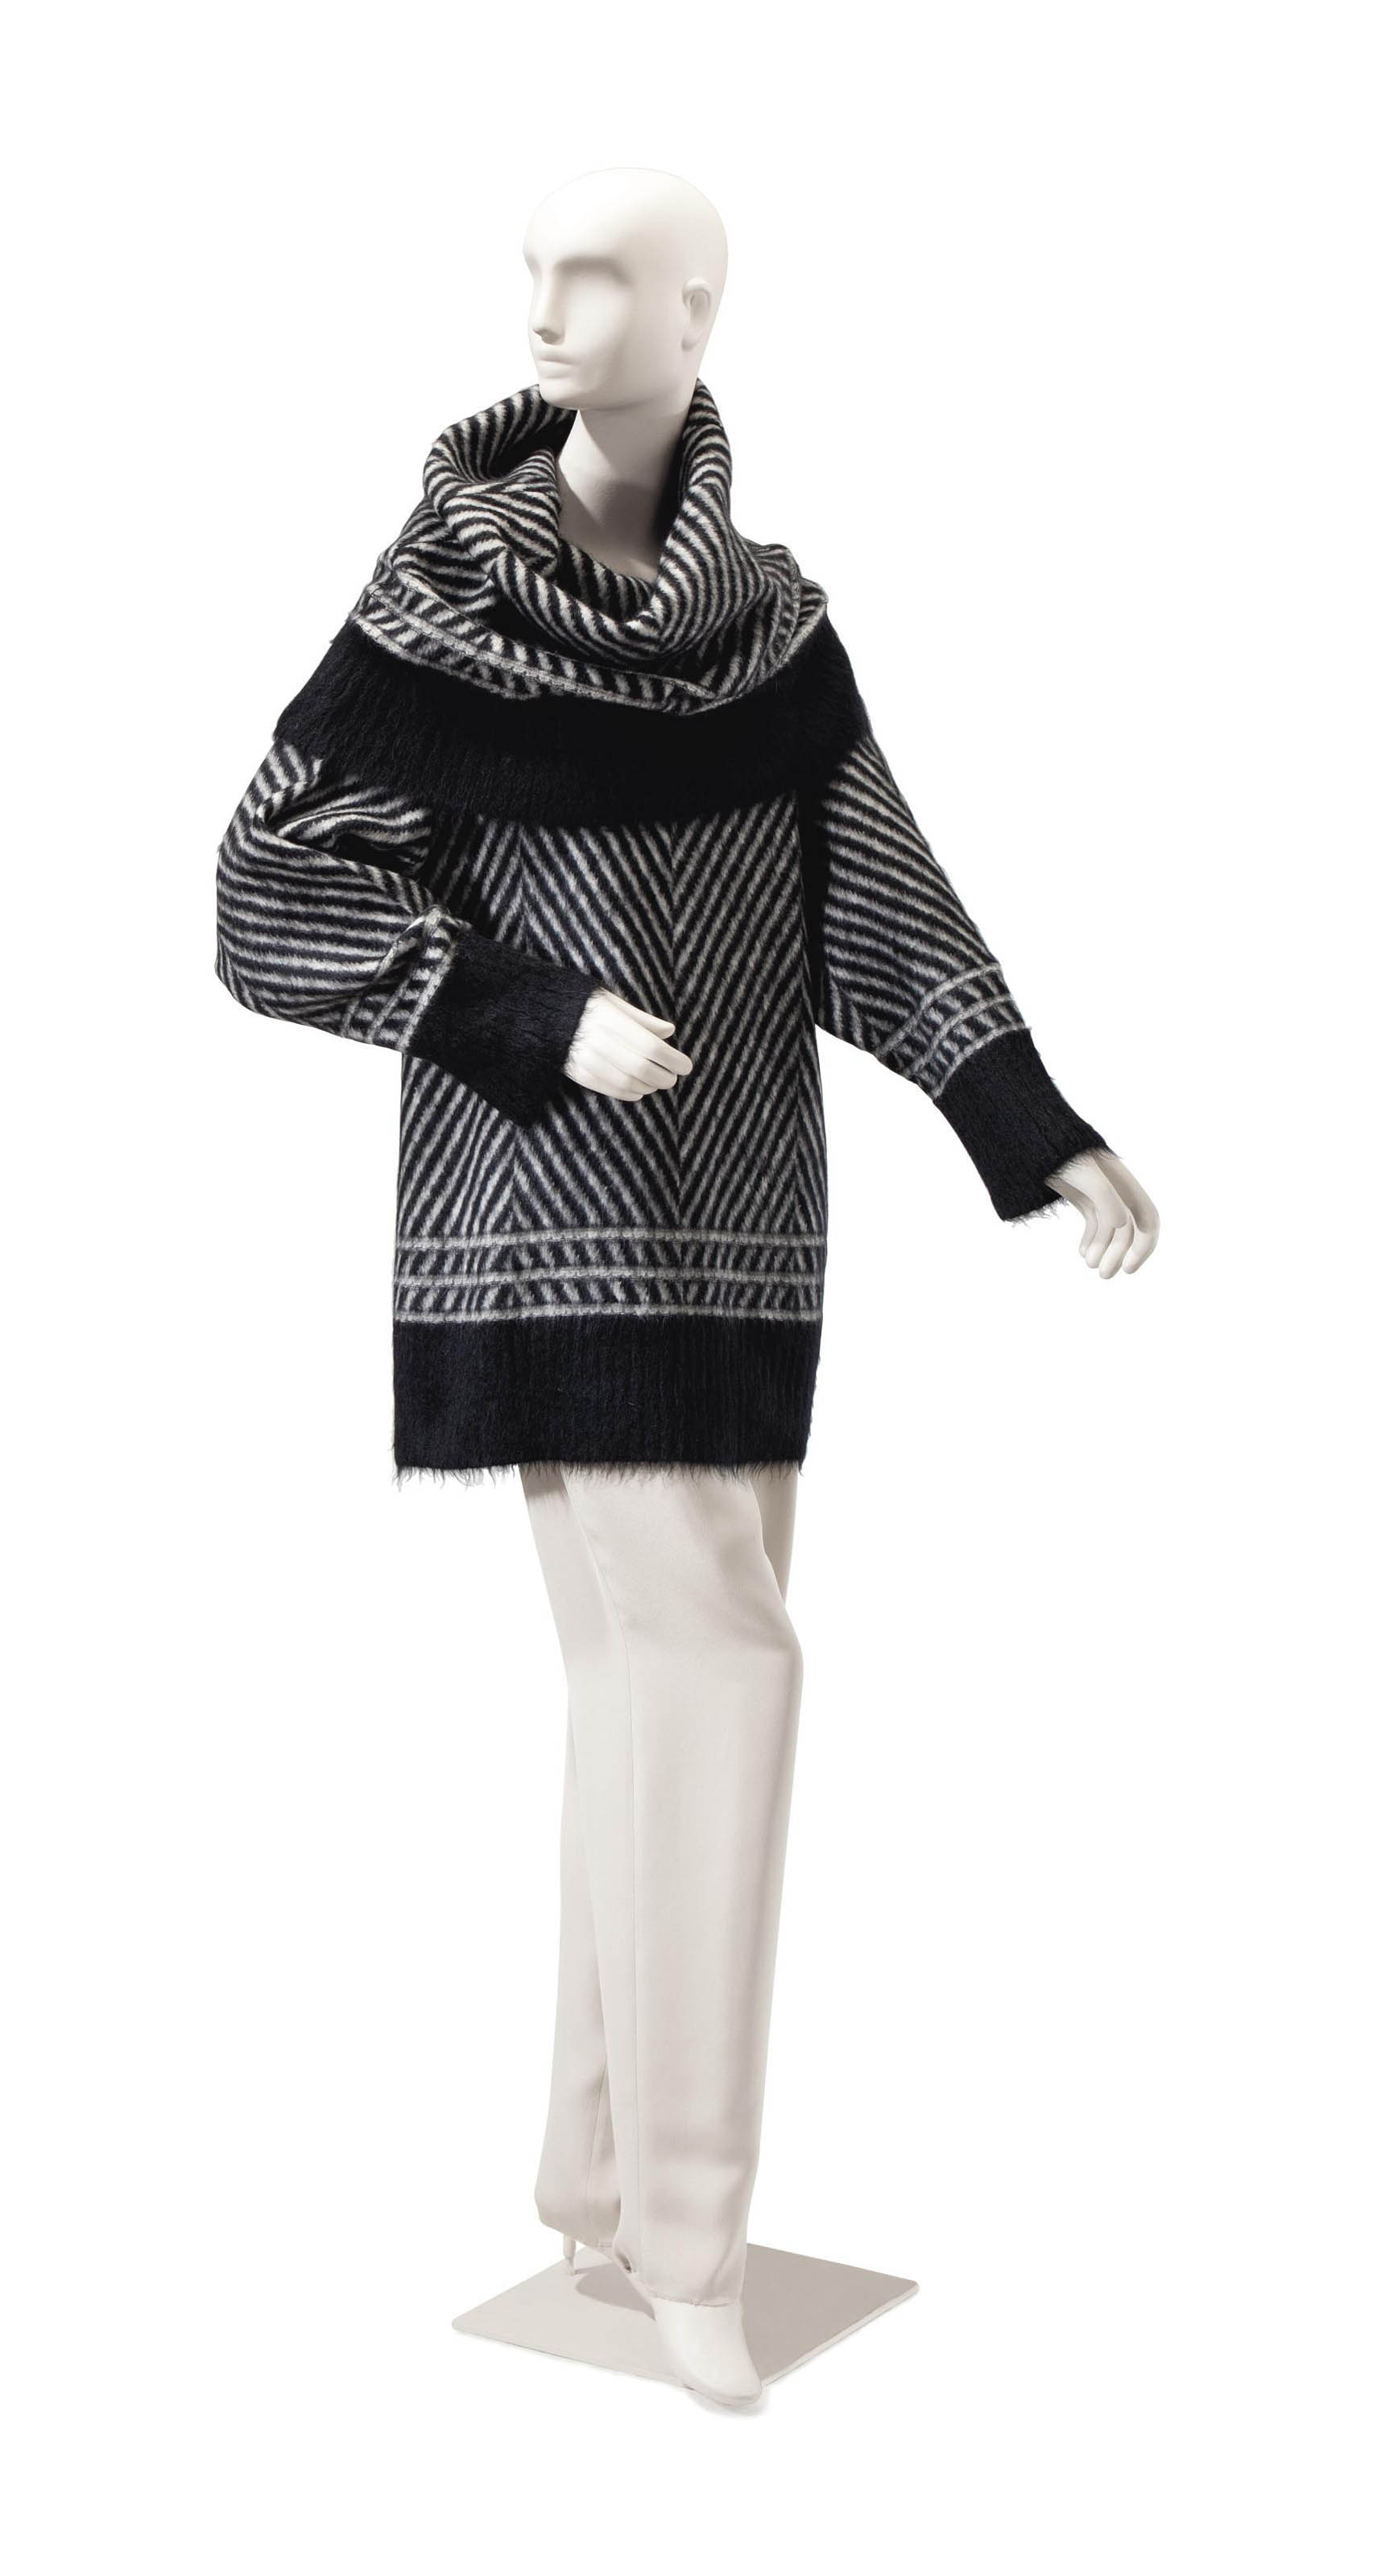 A GALLIANO BLACK AND WHITE MOHAIR SWEATER